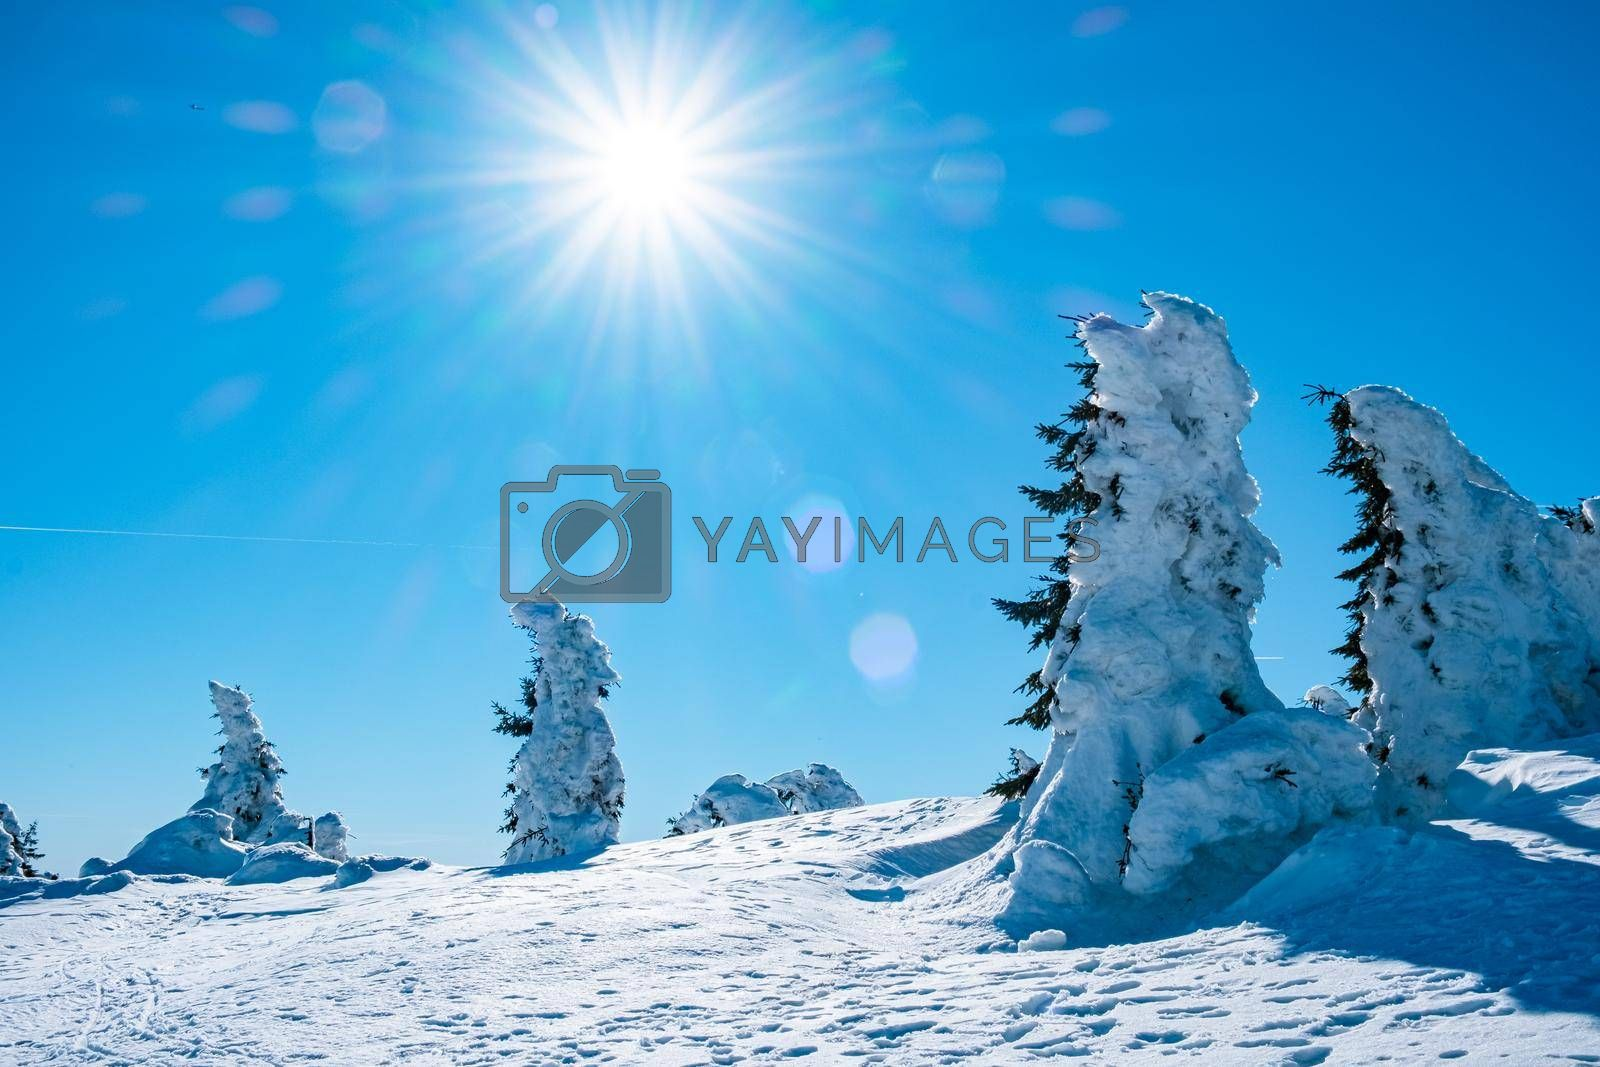 Harz national park Germany, the winter landscape, Brocken, Harz National Park Mountains in Germany Europe